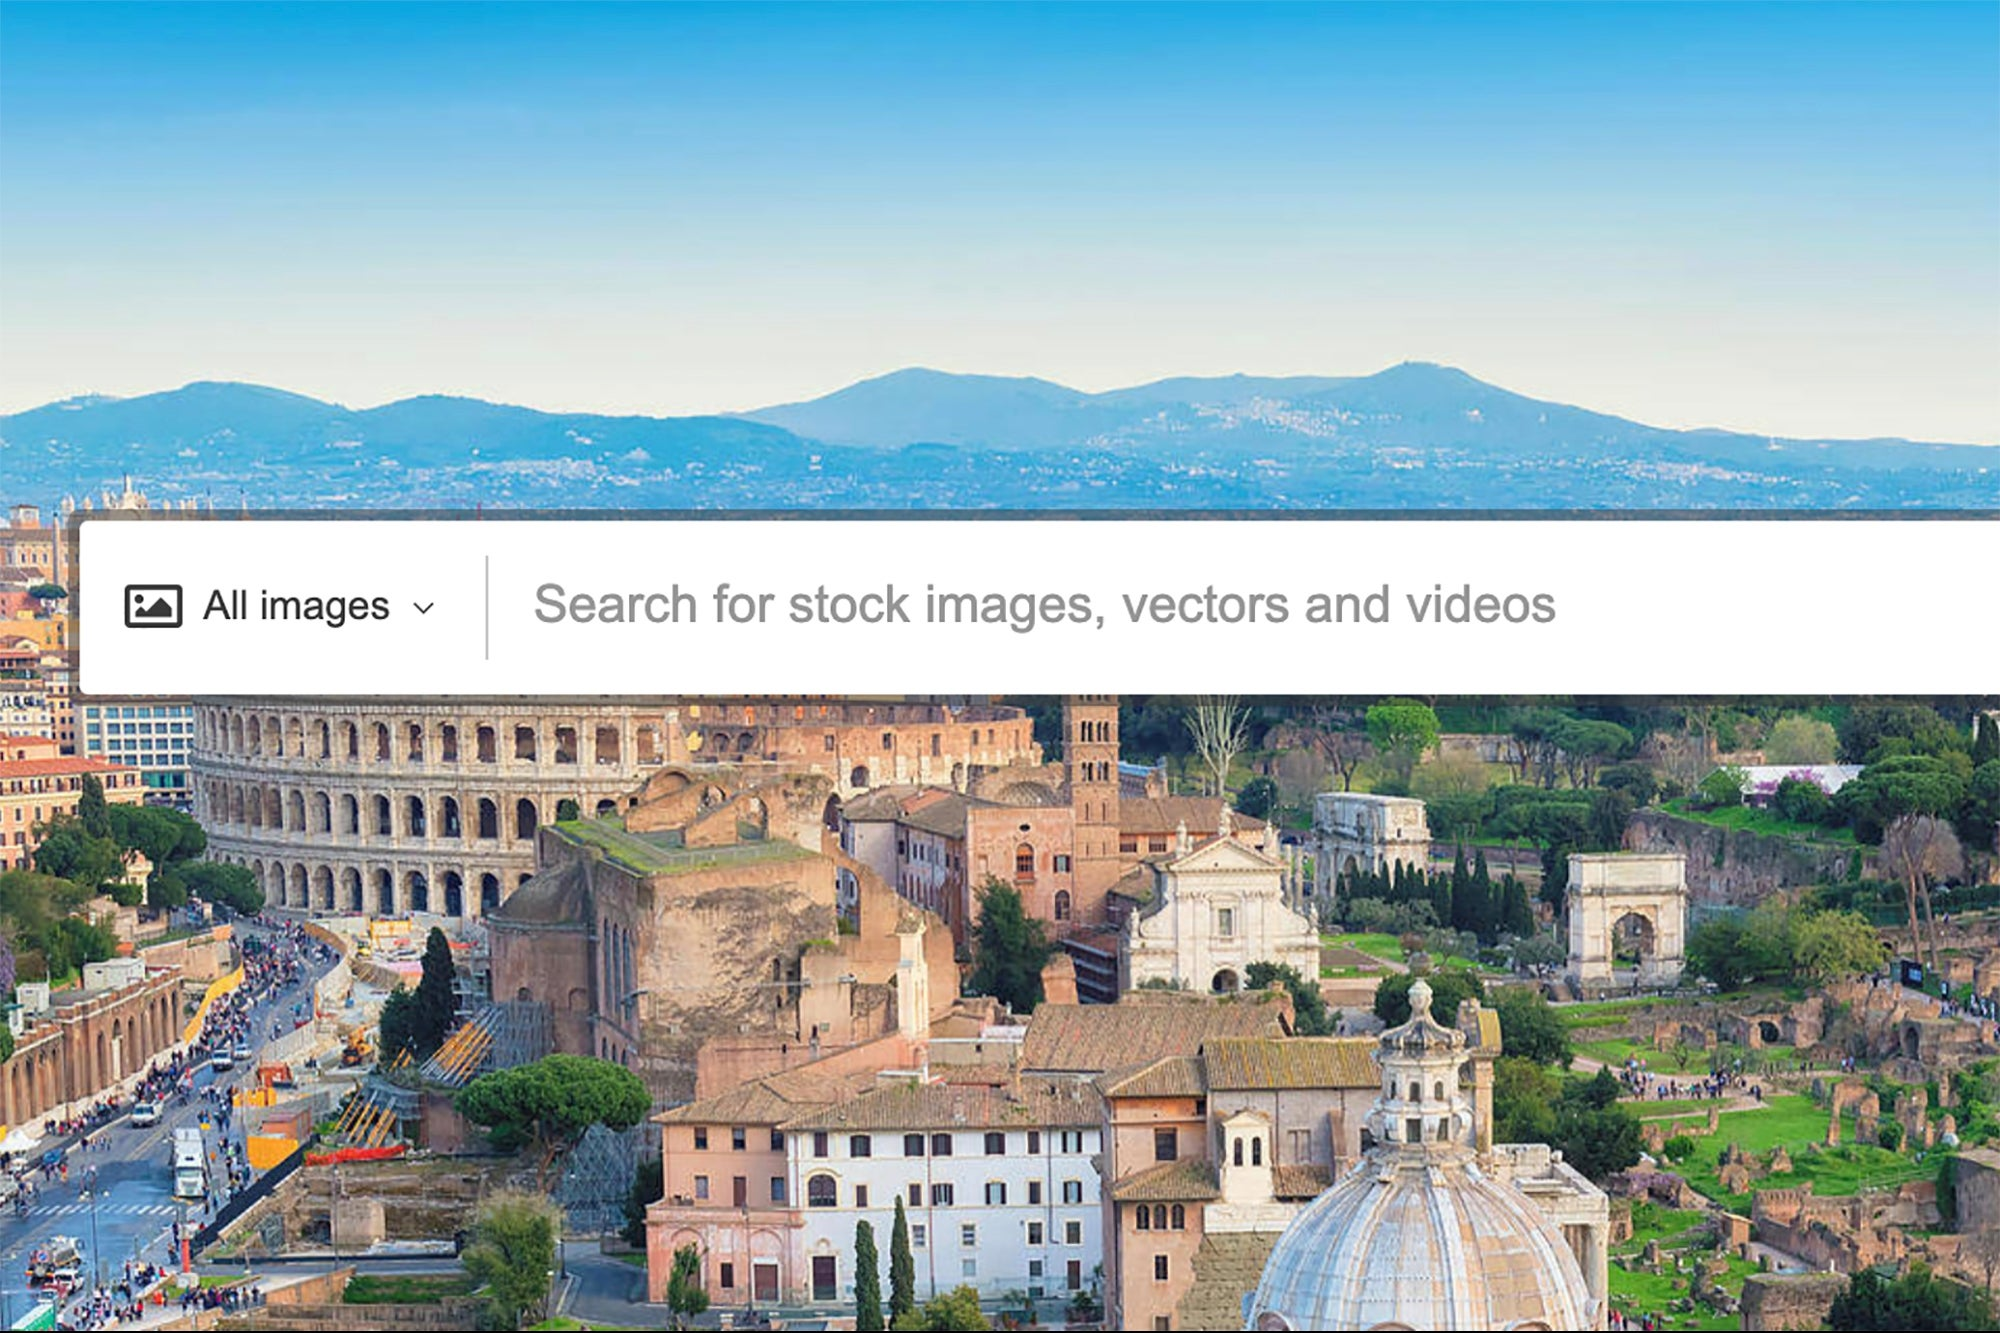 Take 25 Percent Off High-Quality Stock Photos with This Exclusive Offer